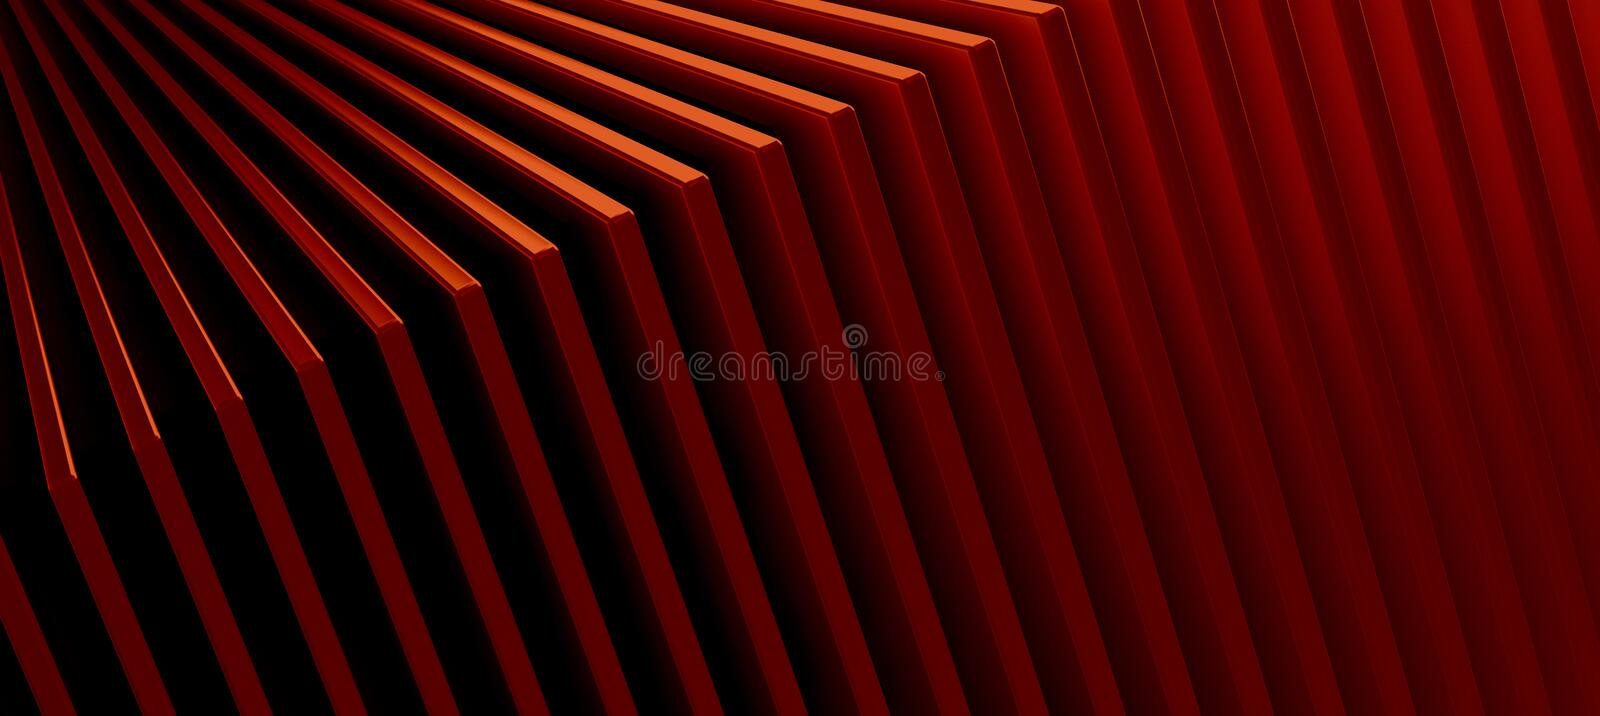 The abstract red metal pattern background. 3D illustration.  vector illustration